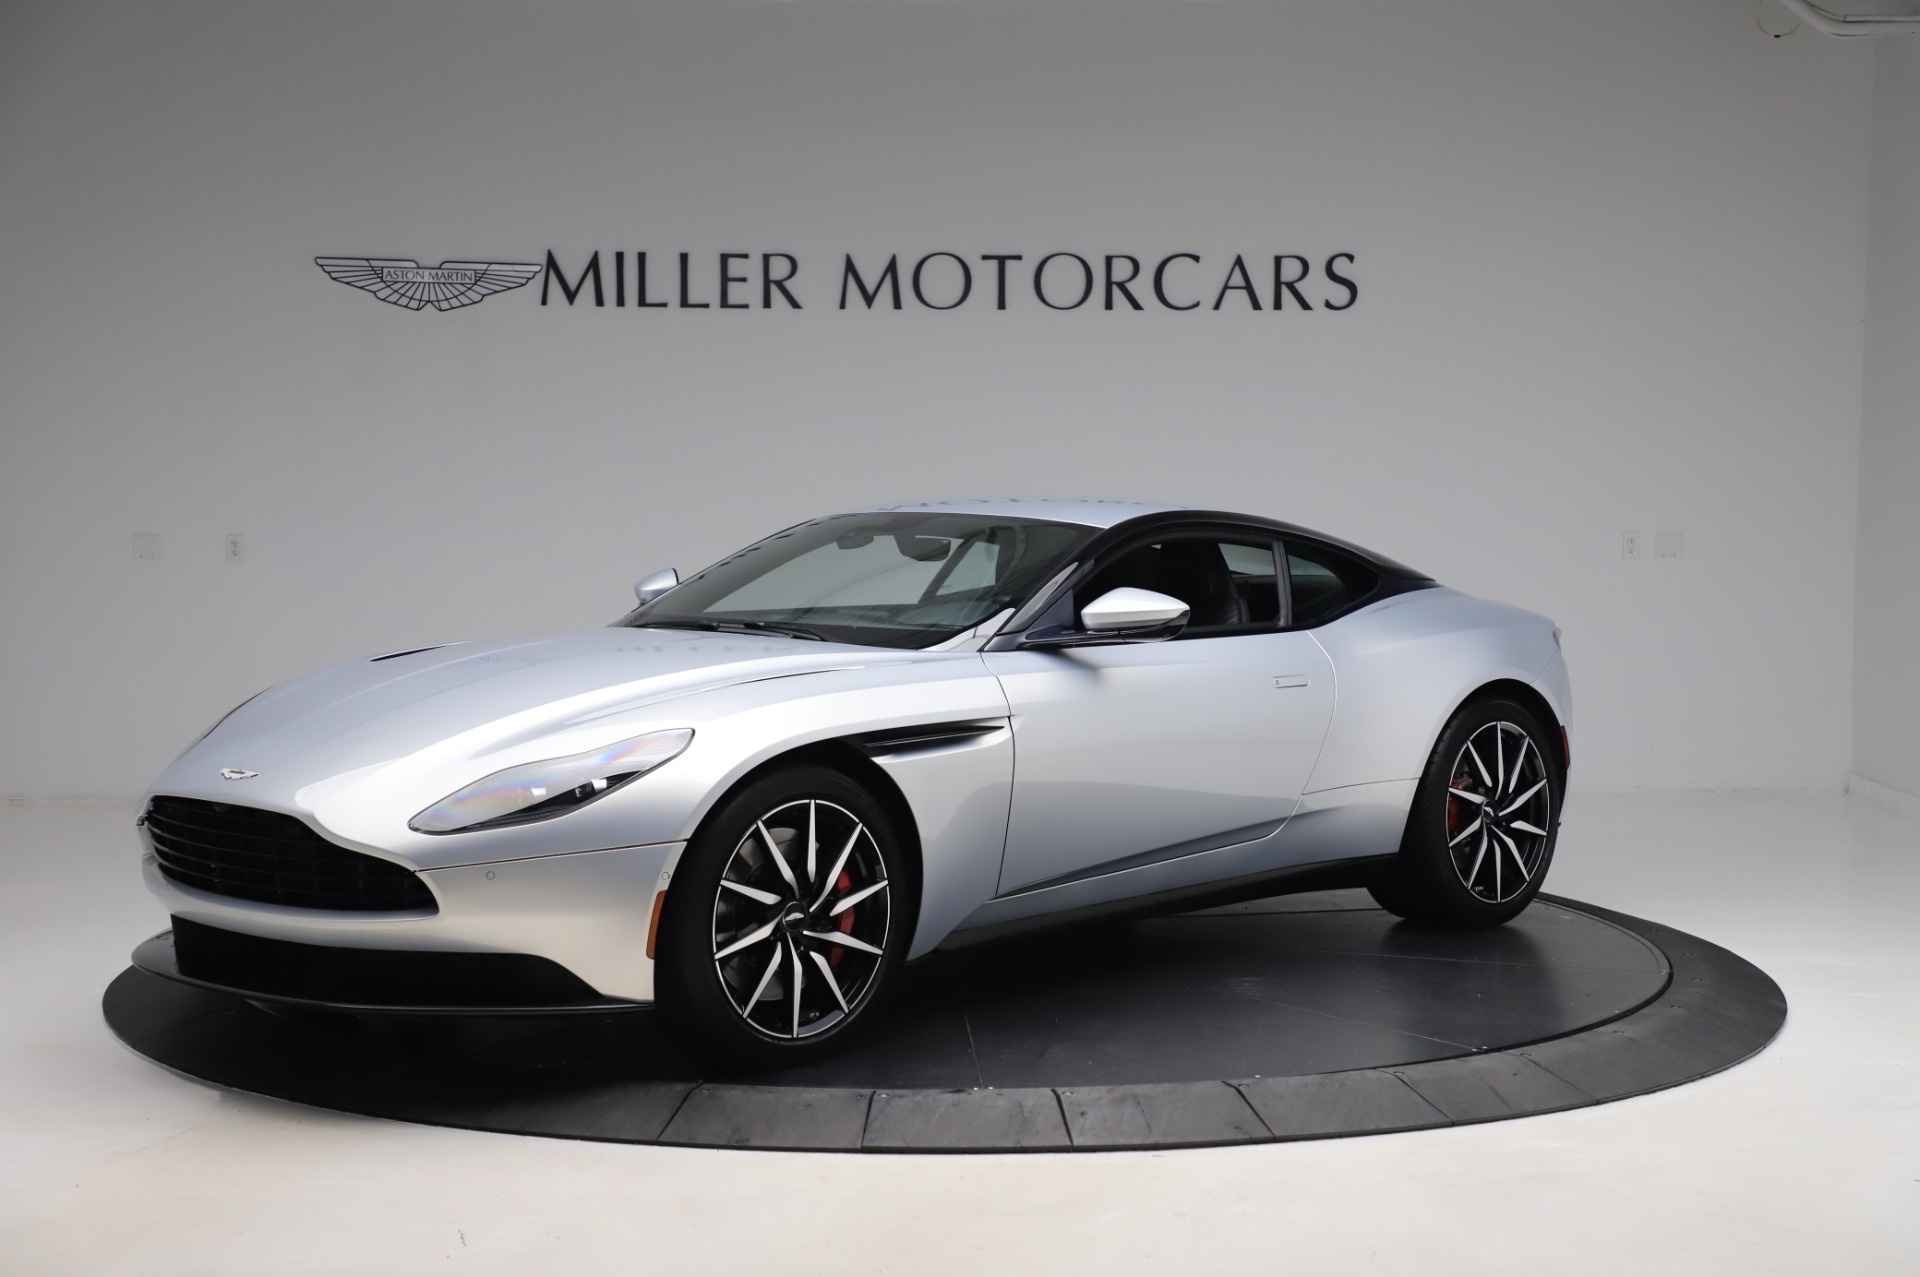 Used 2018 Aston Martin DB11 V8 Coupe for sale Sold at Alfa Romeo of Westport in Westport CT 06880 1